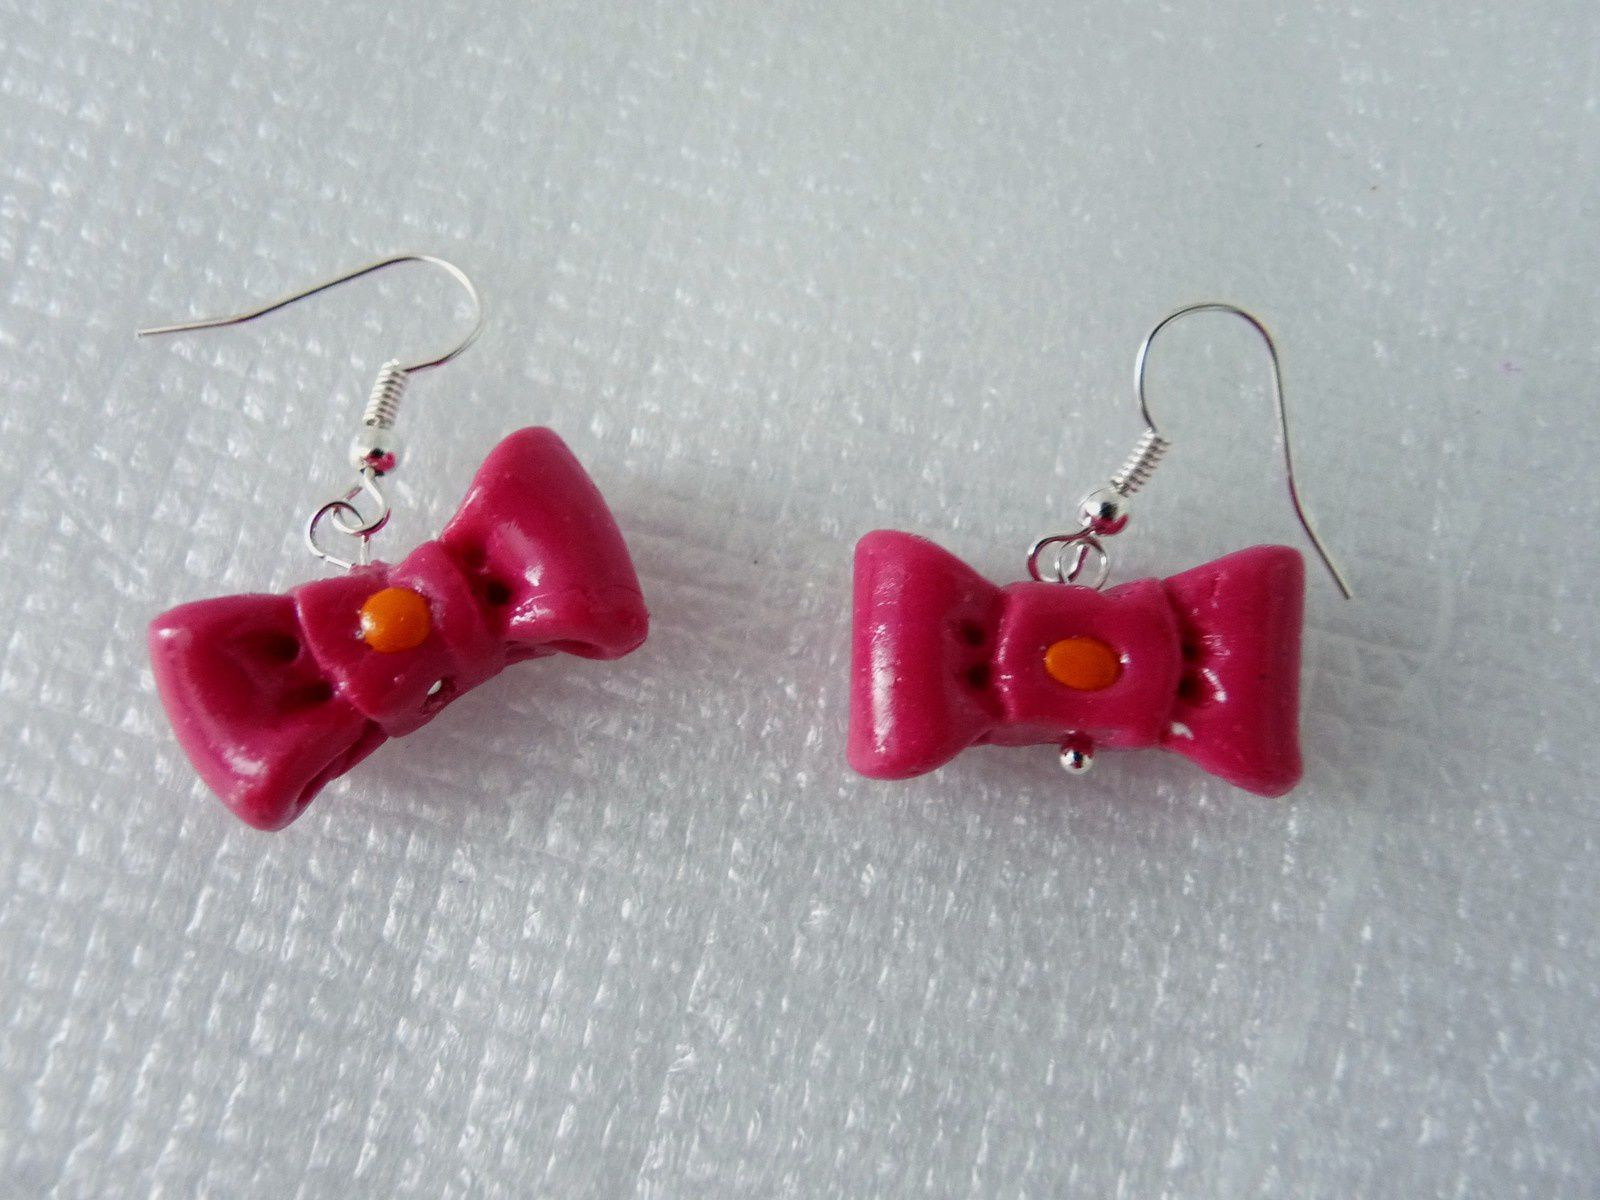 Version boucles d'oreille